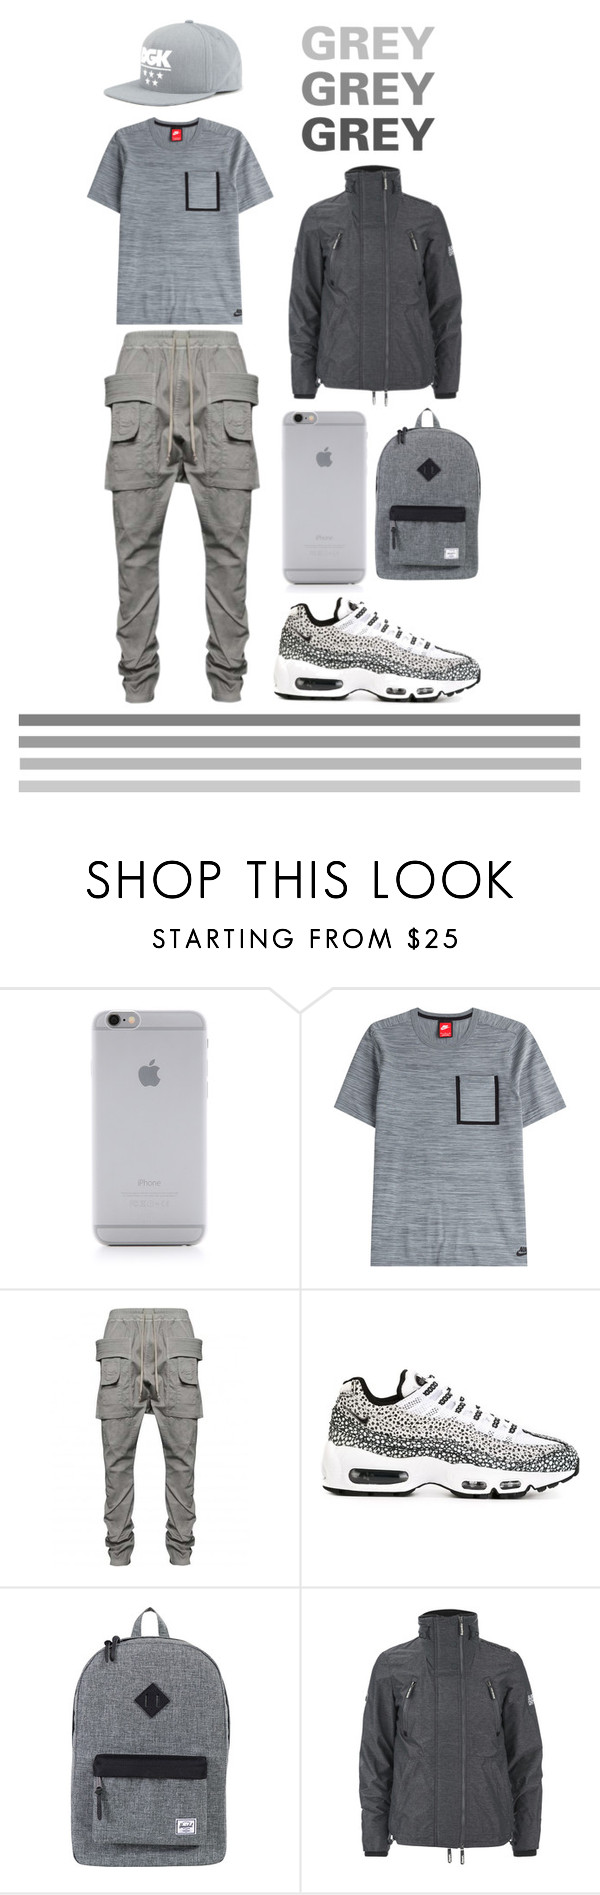 """GREY DAY"" by xxxdlite on Polyvore featuring Native Union, NIKE, DRKSHDW, Herschel Supply Co., Superdry, DGK, men's fashion and menswear"